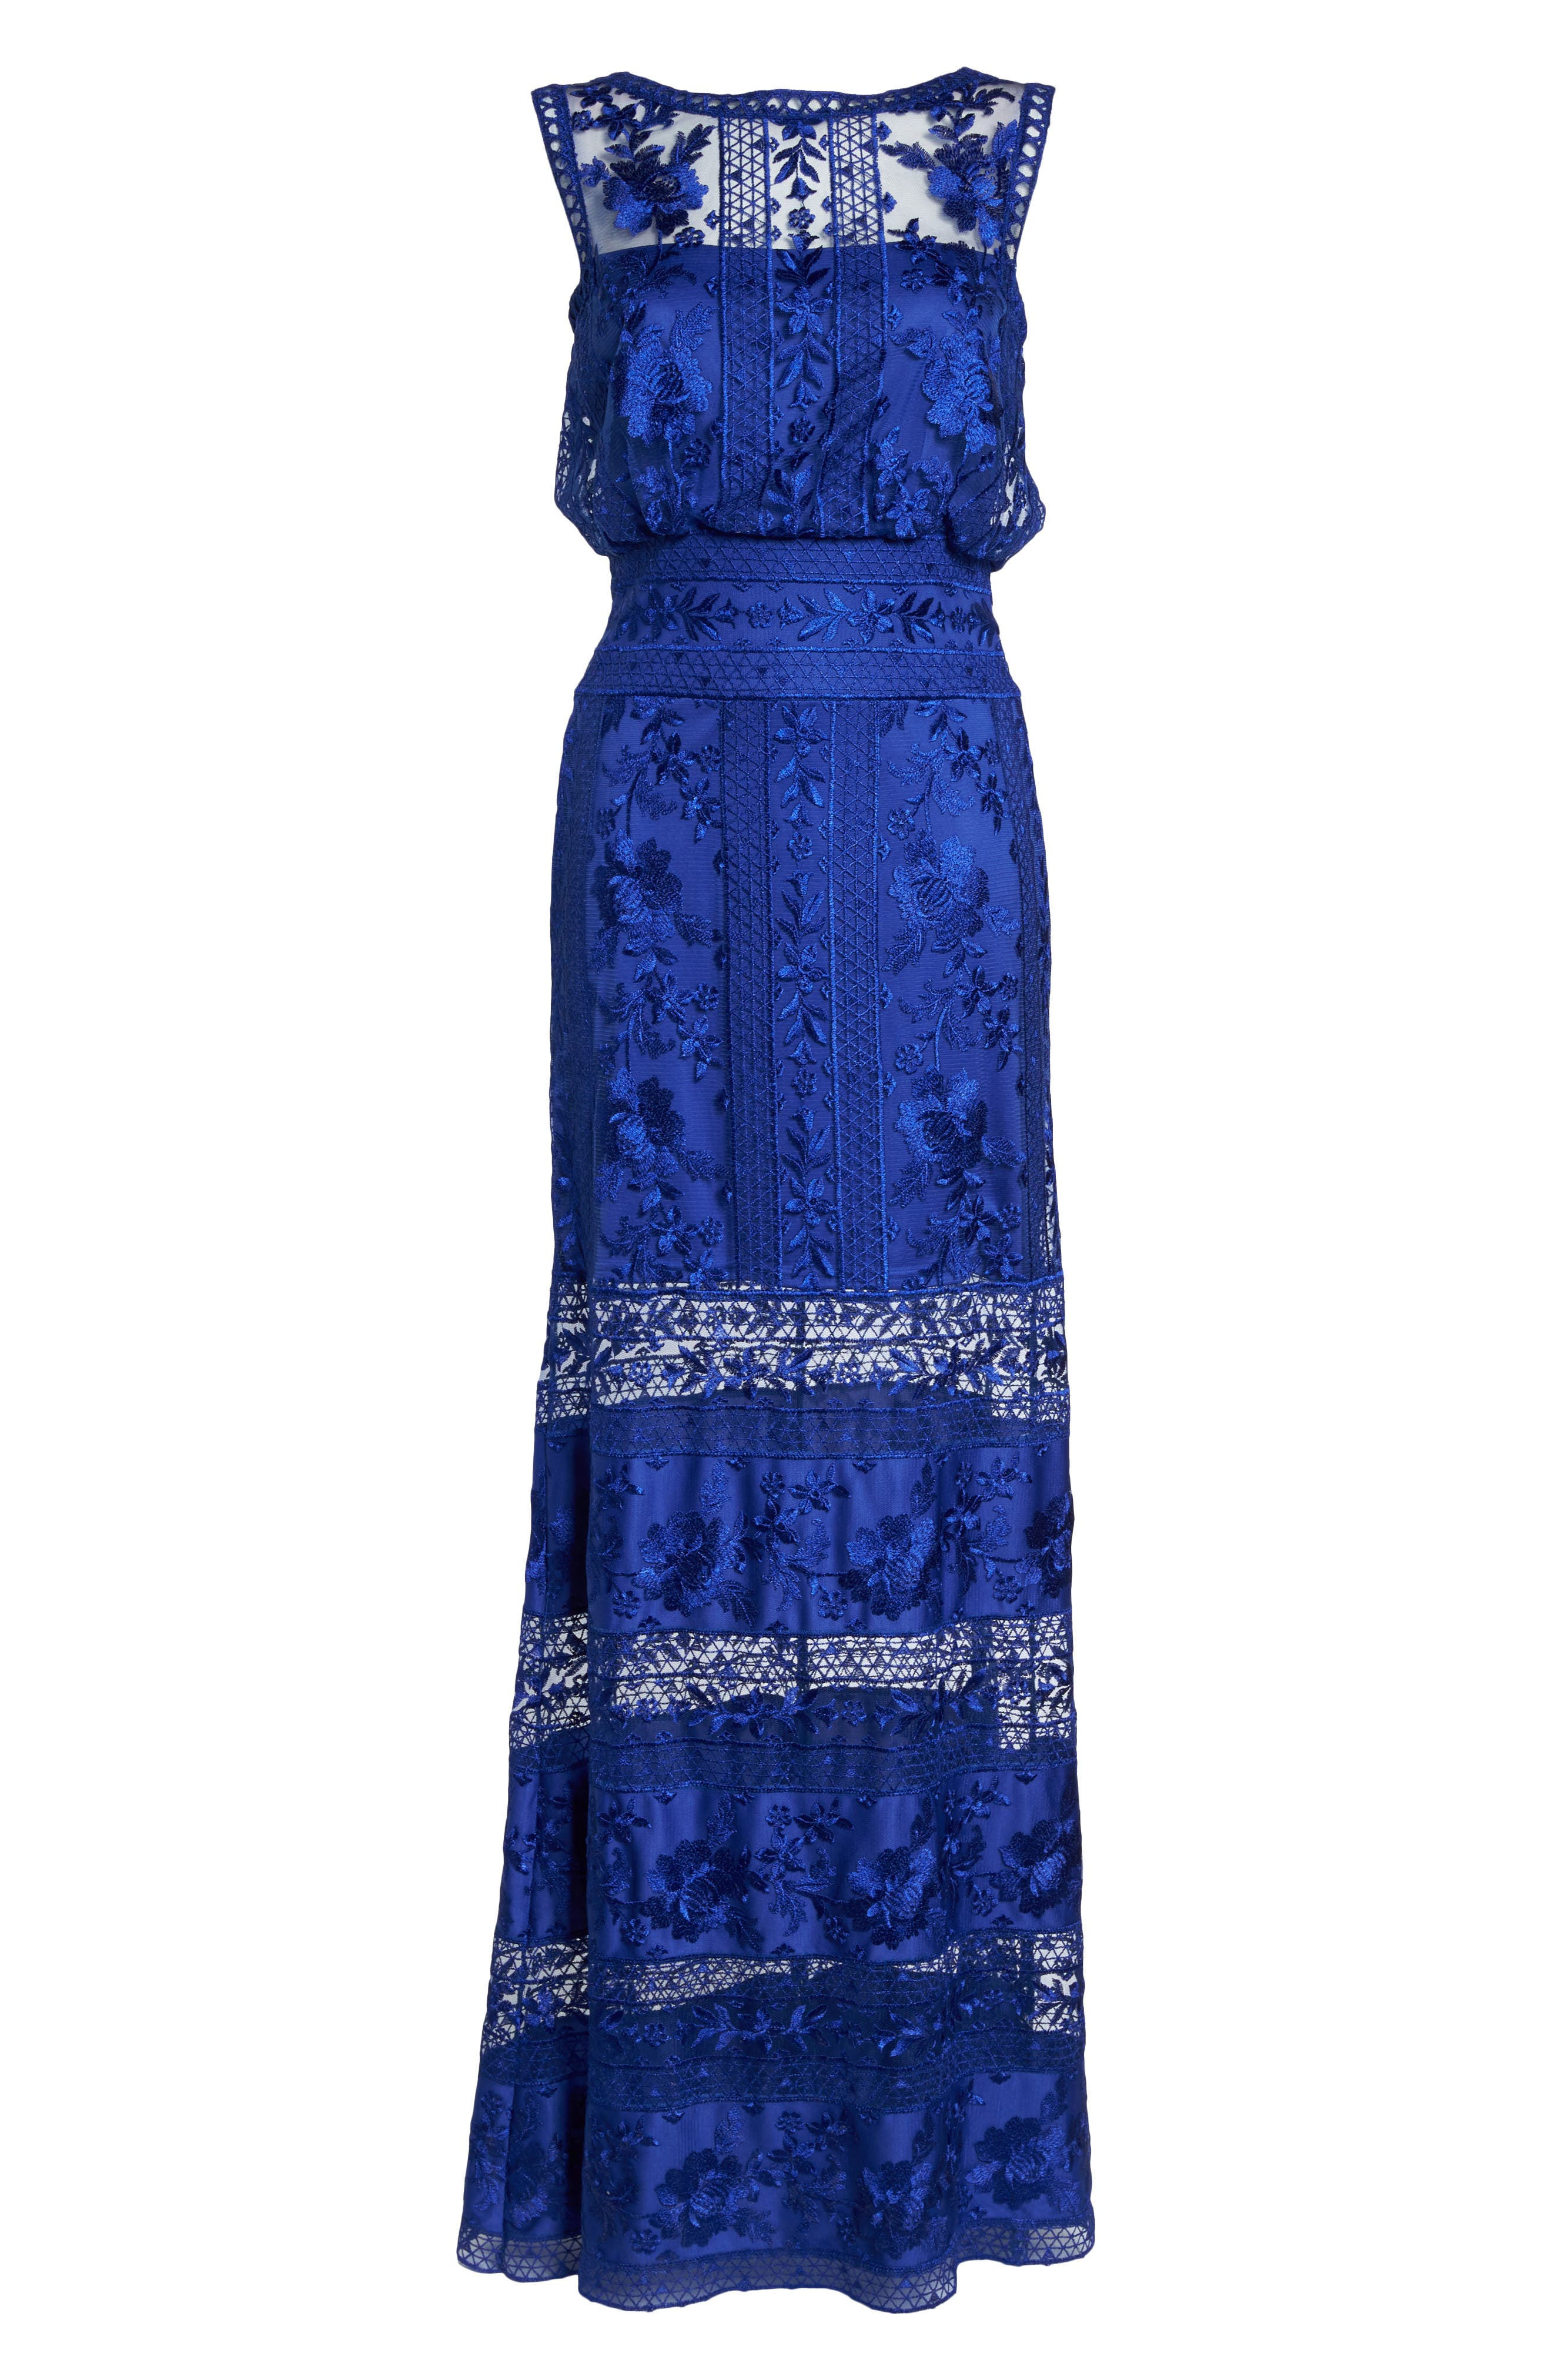 Kaisra Embroidered Lace Gown,                             Alternate thumbnail 6, color,                             Indigo